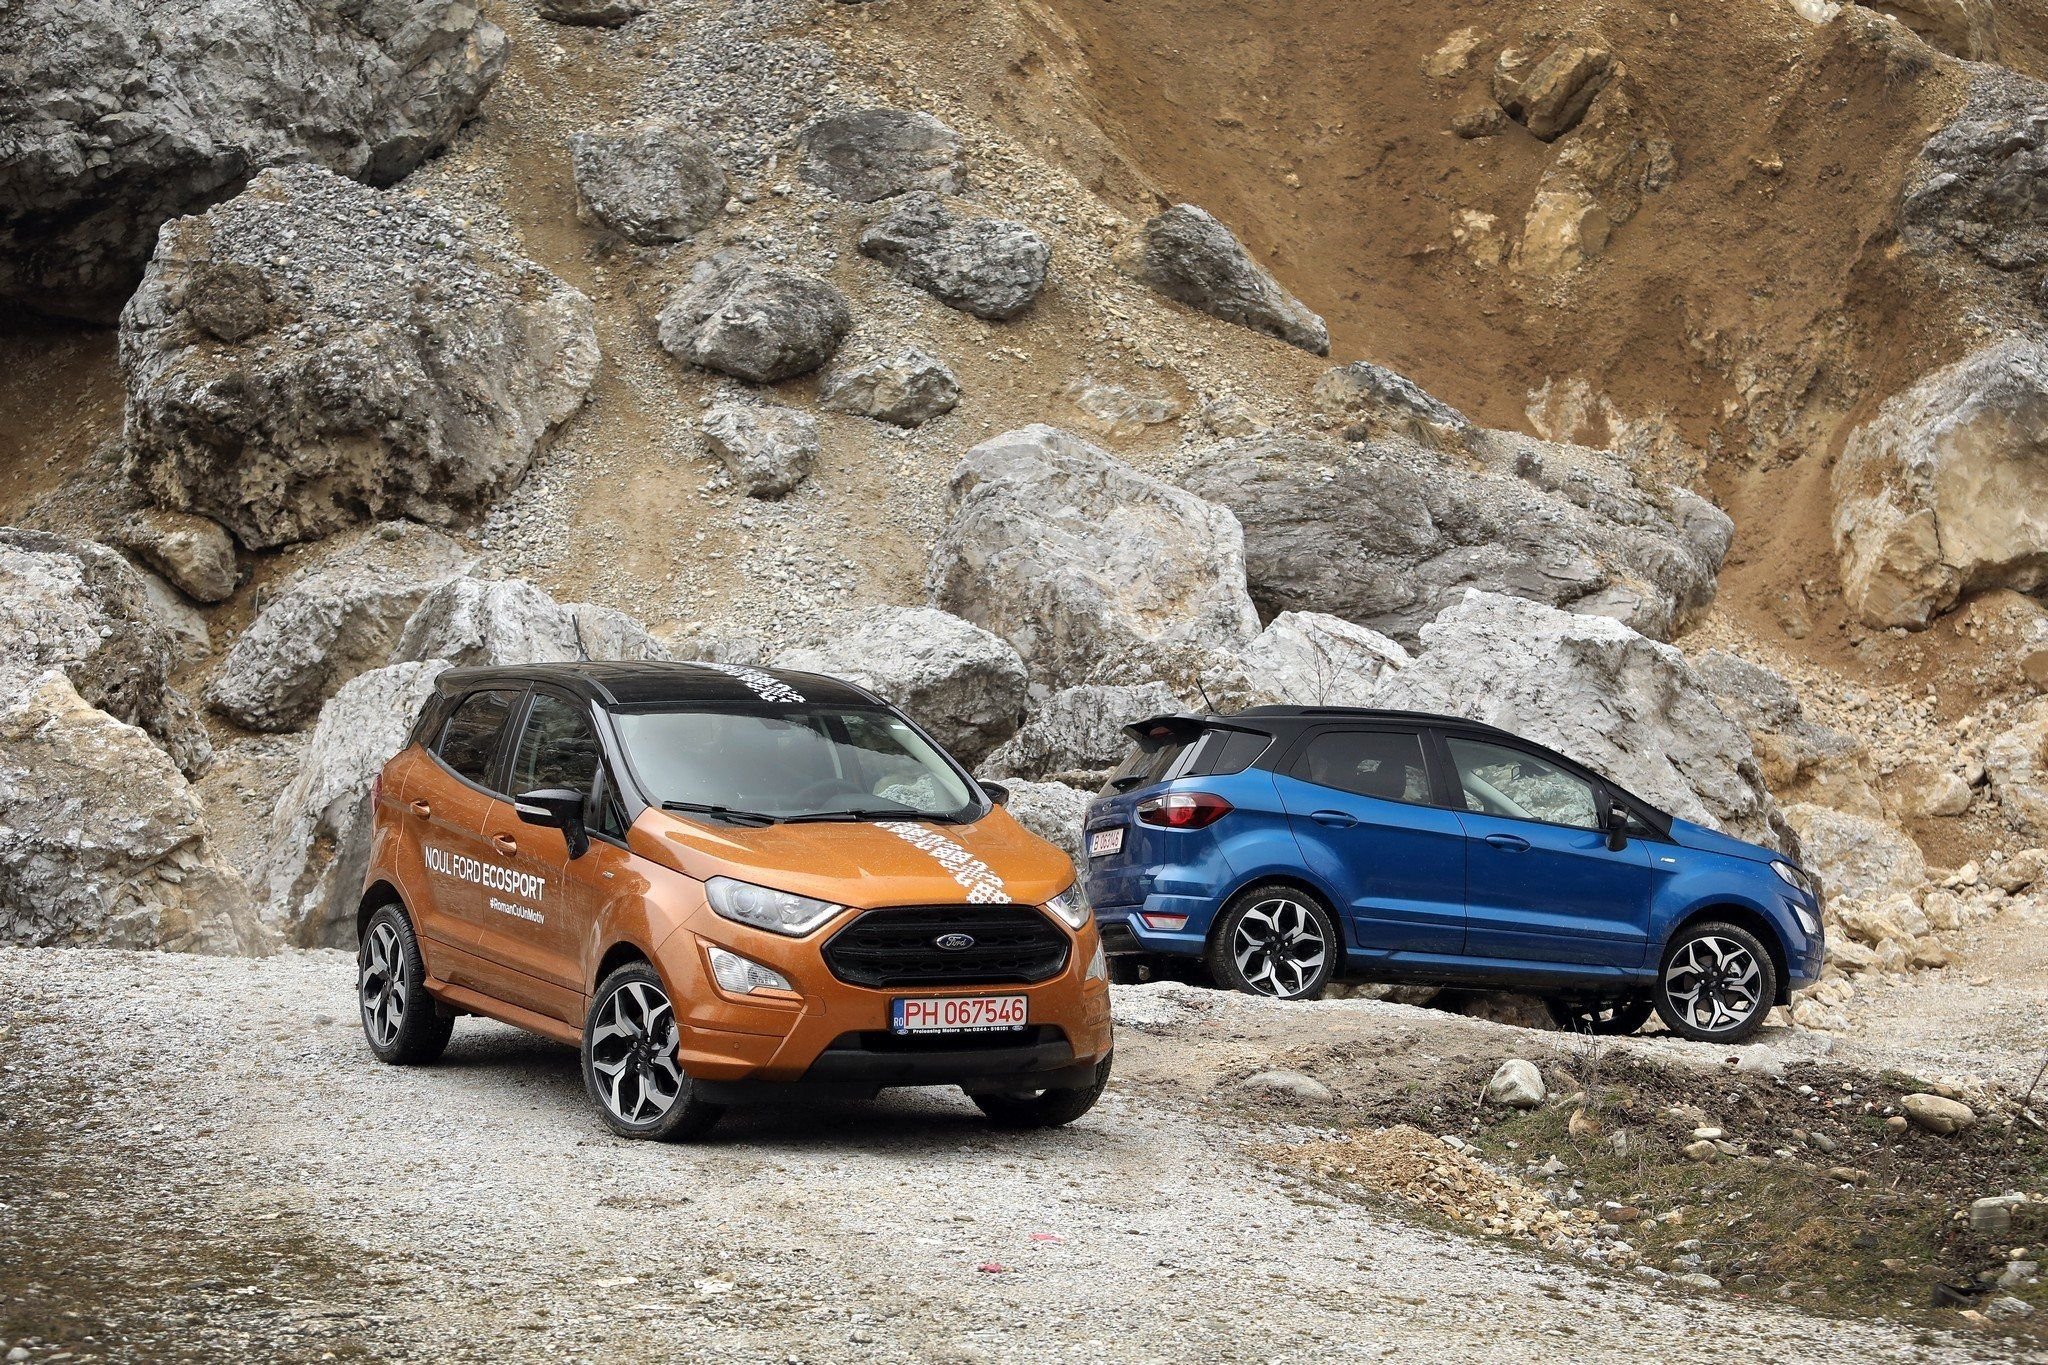 2021 Ford Ecosport Wallpaper